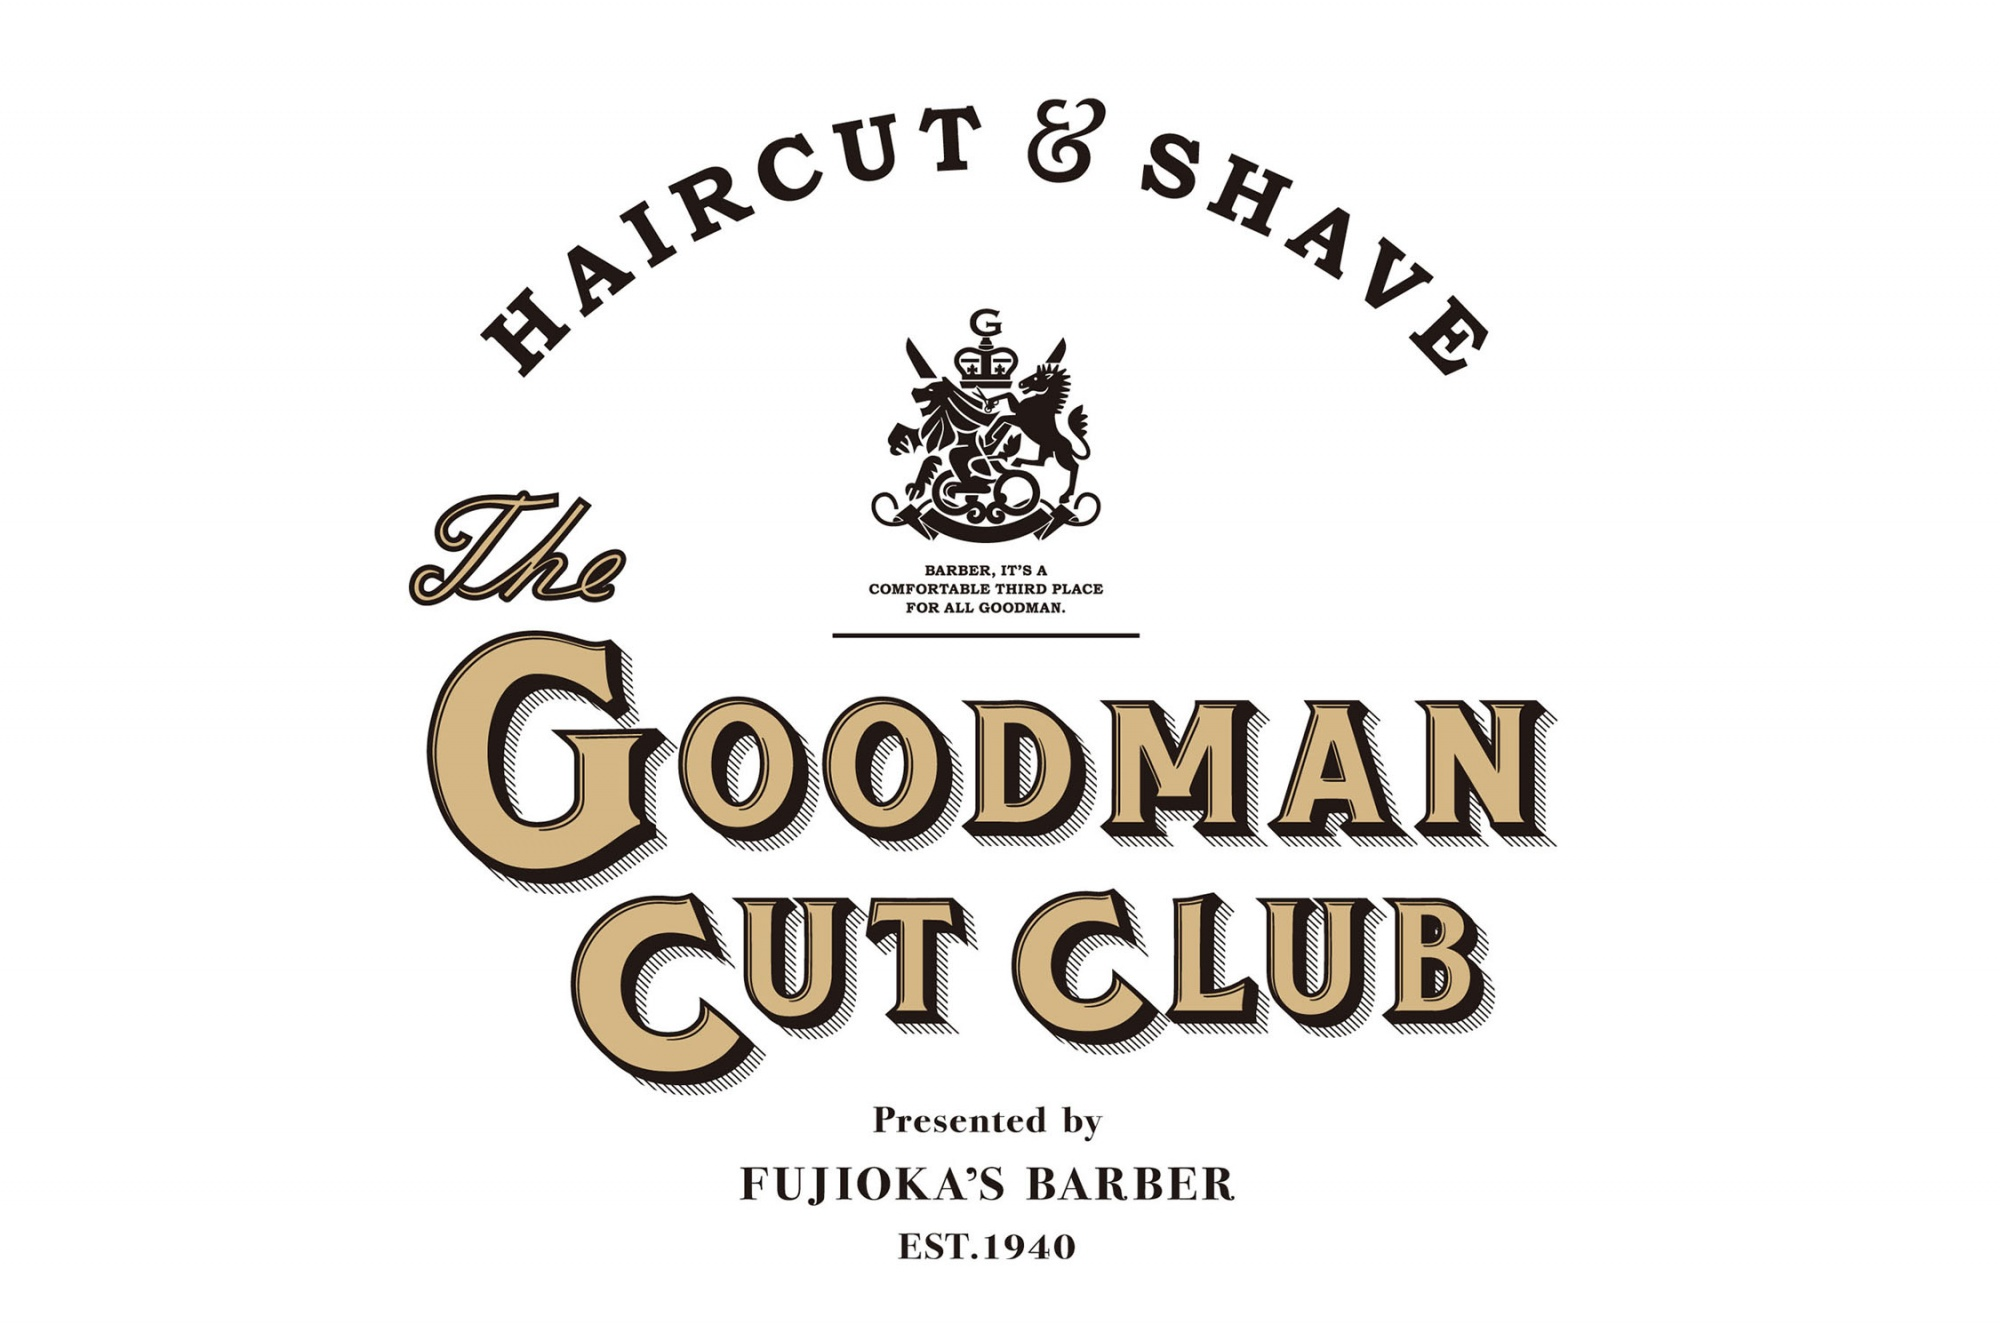 The GOODMAN CUT CLUB